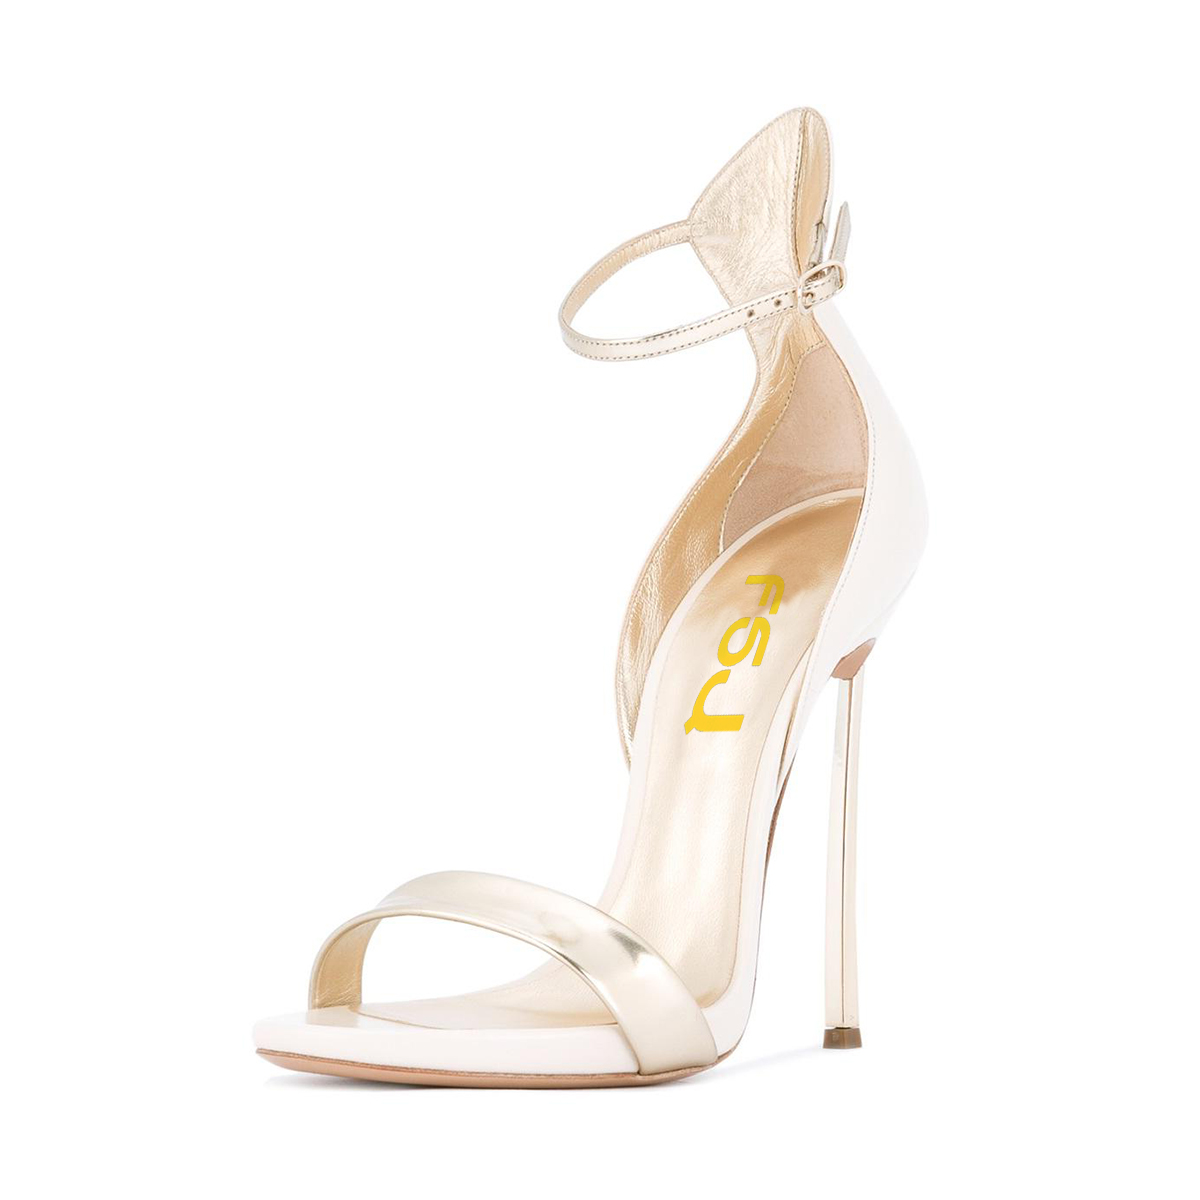 Women's Silver Patent Leather Stiletto Evening High Heel Ankle Strap Sandals